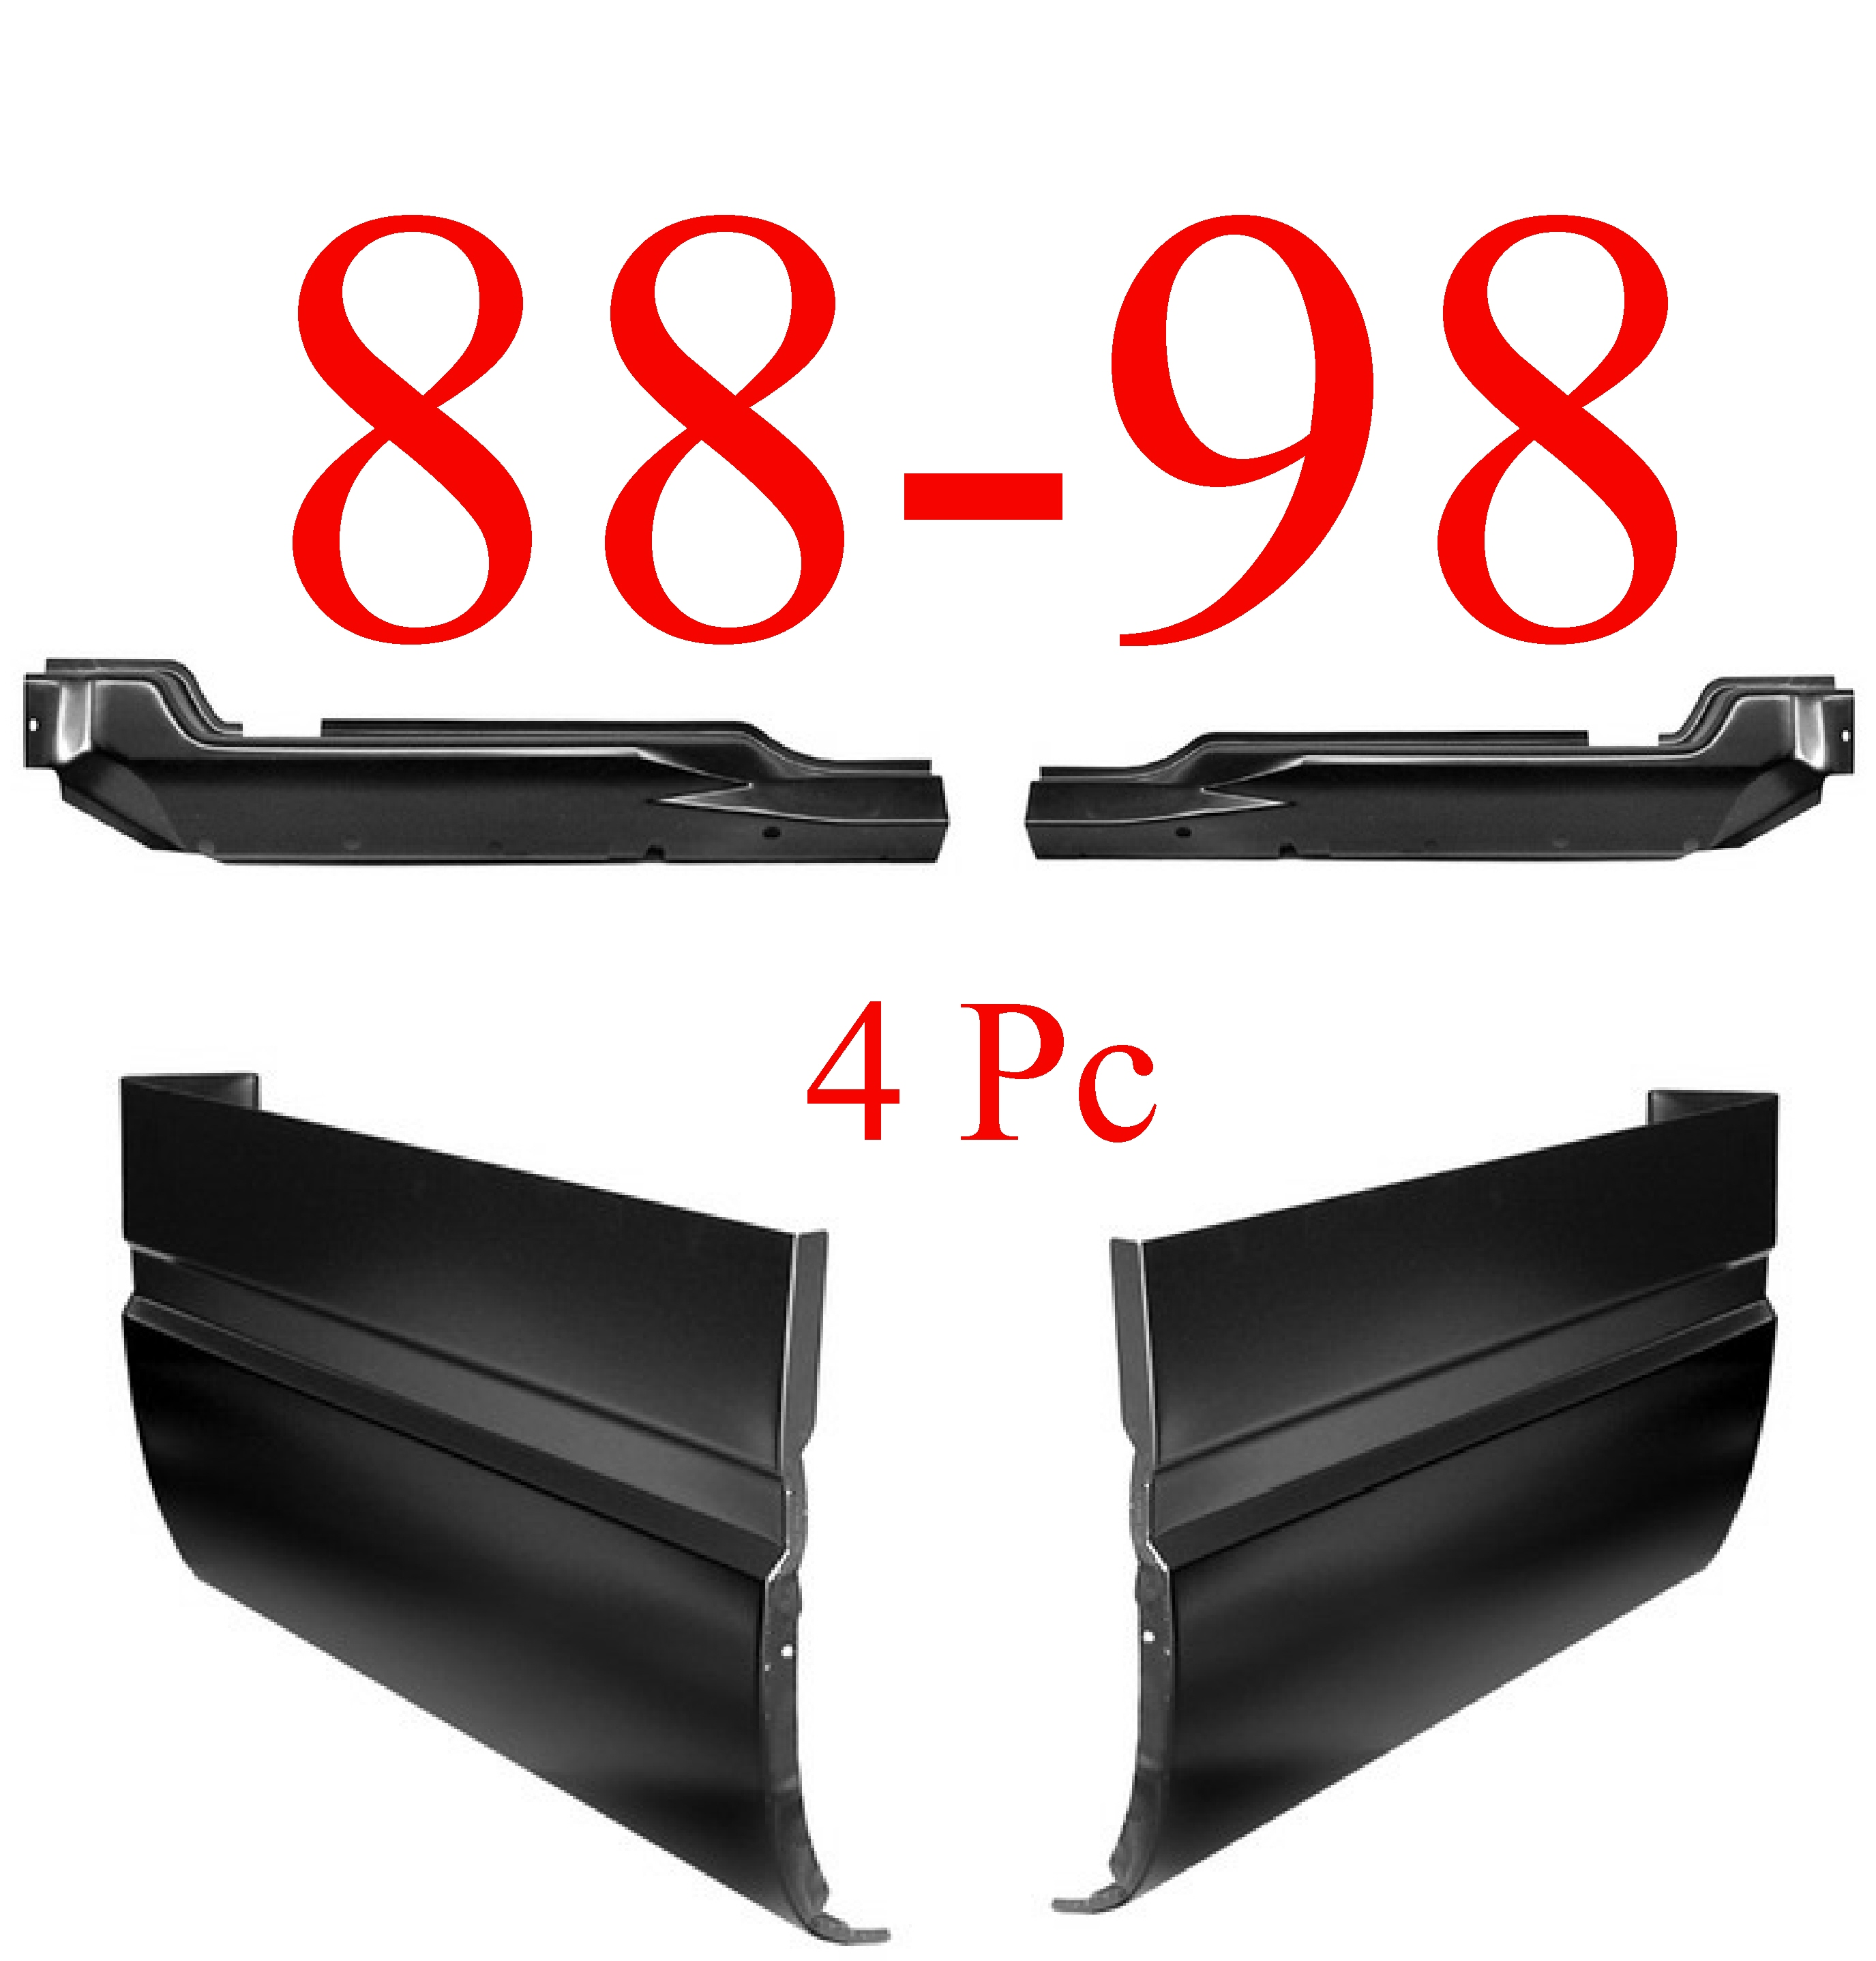 88-98 Chevy GMC 4Pc Inner & Outer Extended Cab Corner Kit